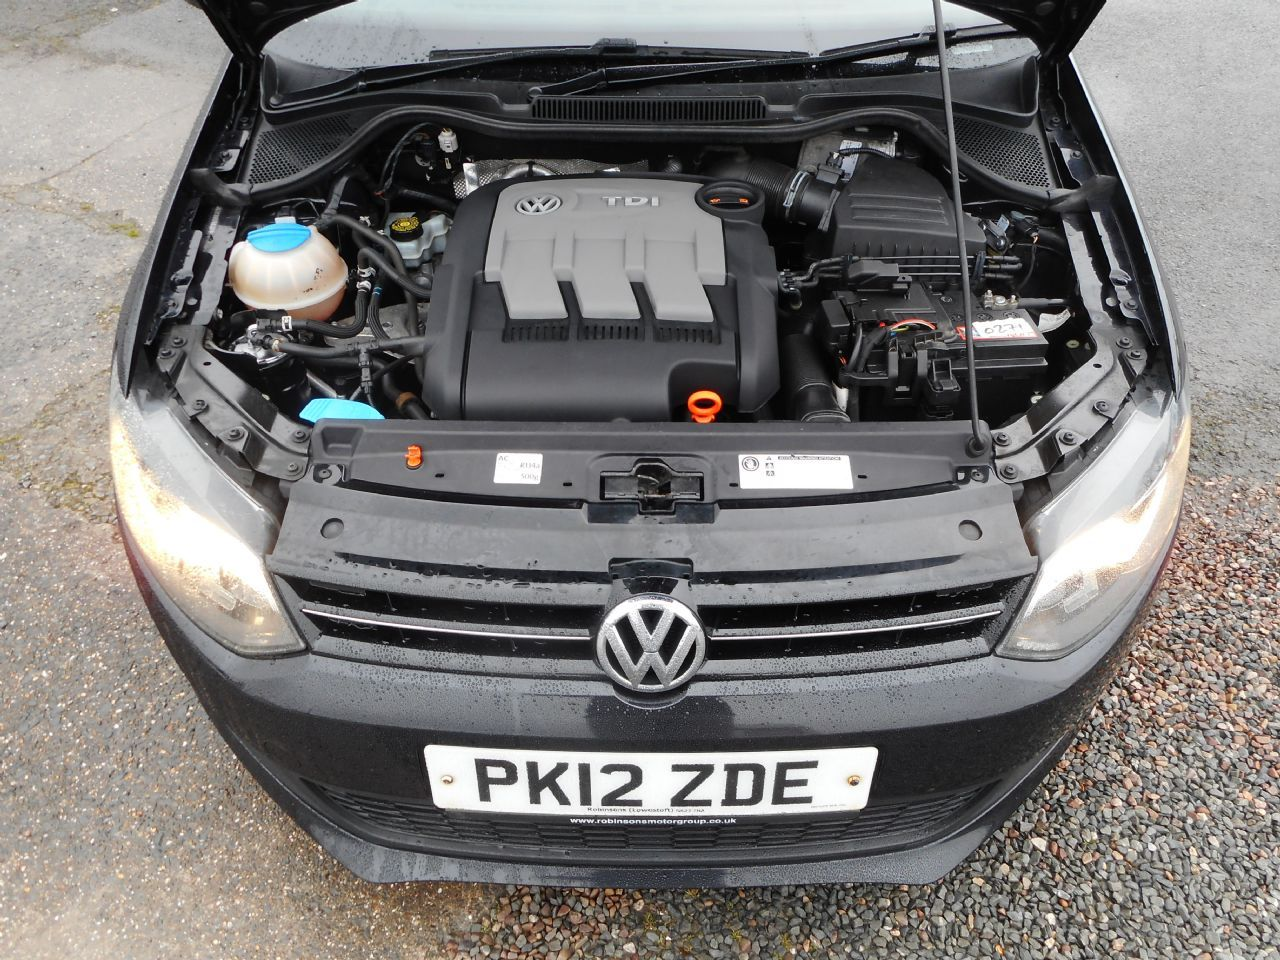 VOLKSWAGEN POLO 1.2 TDI 75 PS Match (2012) - Picture 17